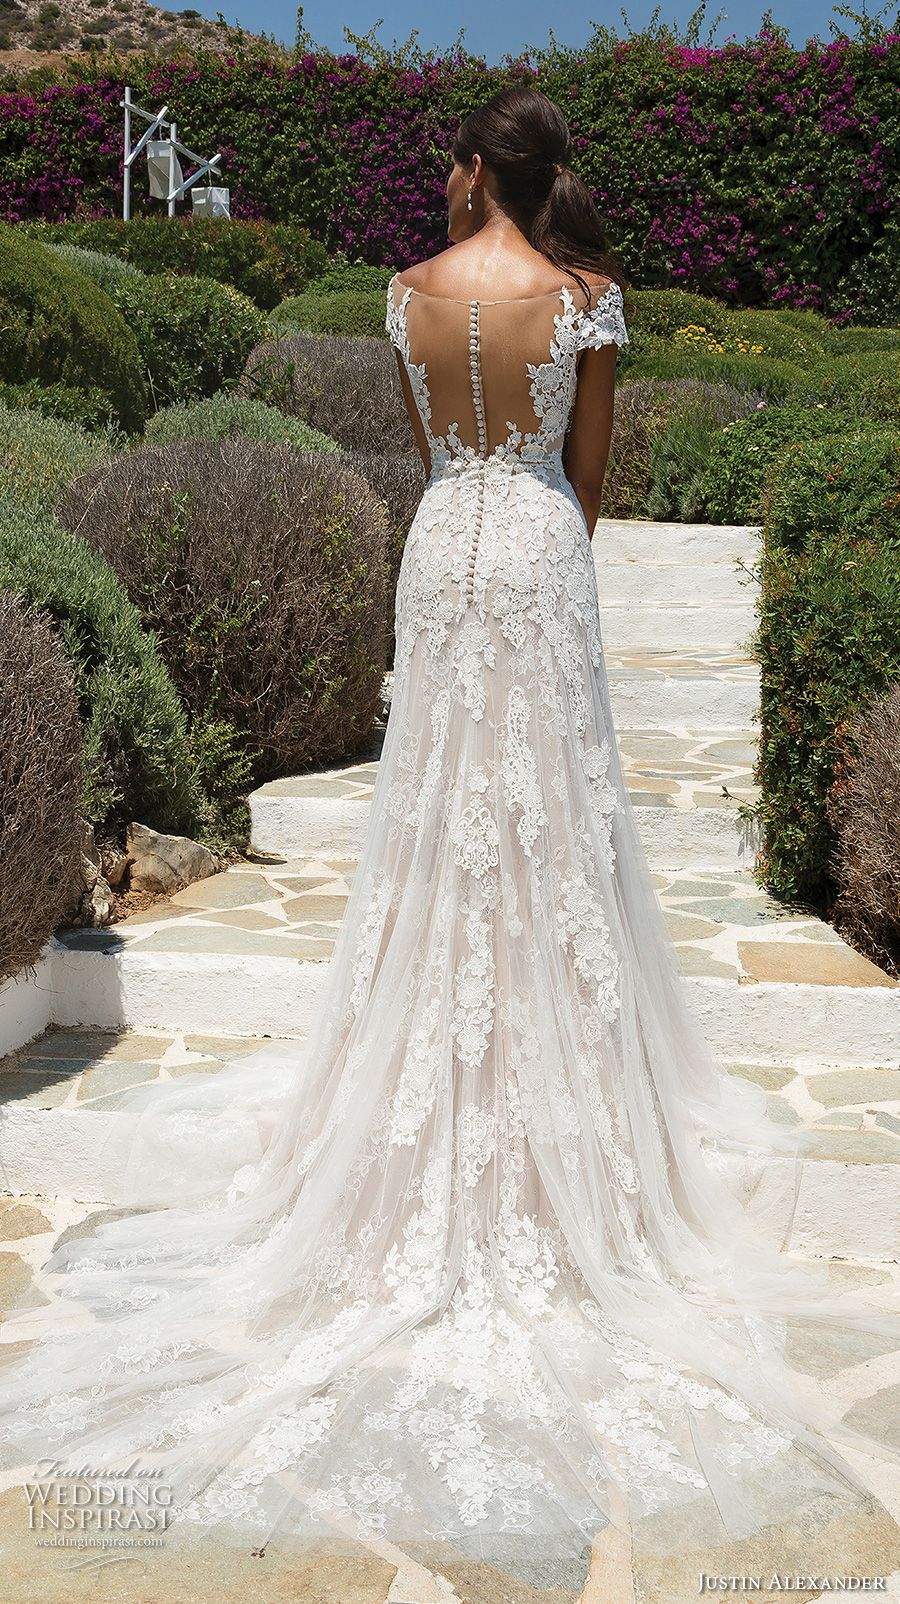 Lace over tulle wedding dress january 2019 Justin Alexander  Wedding Dresses  Wedding Dresses  Pinterest